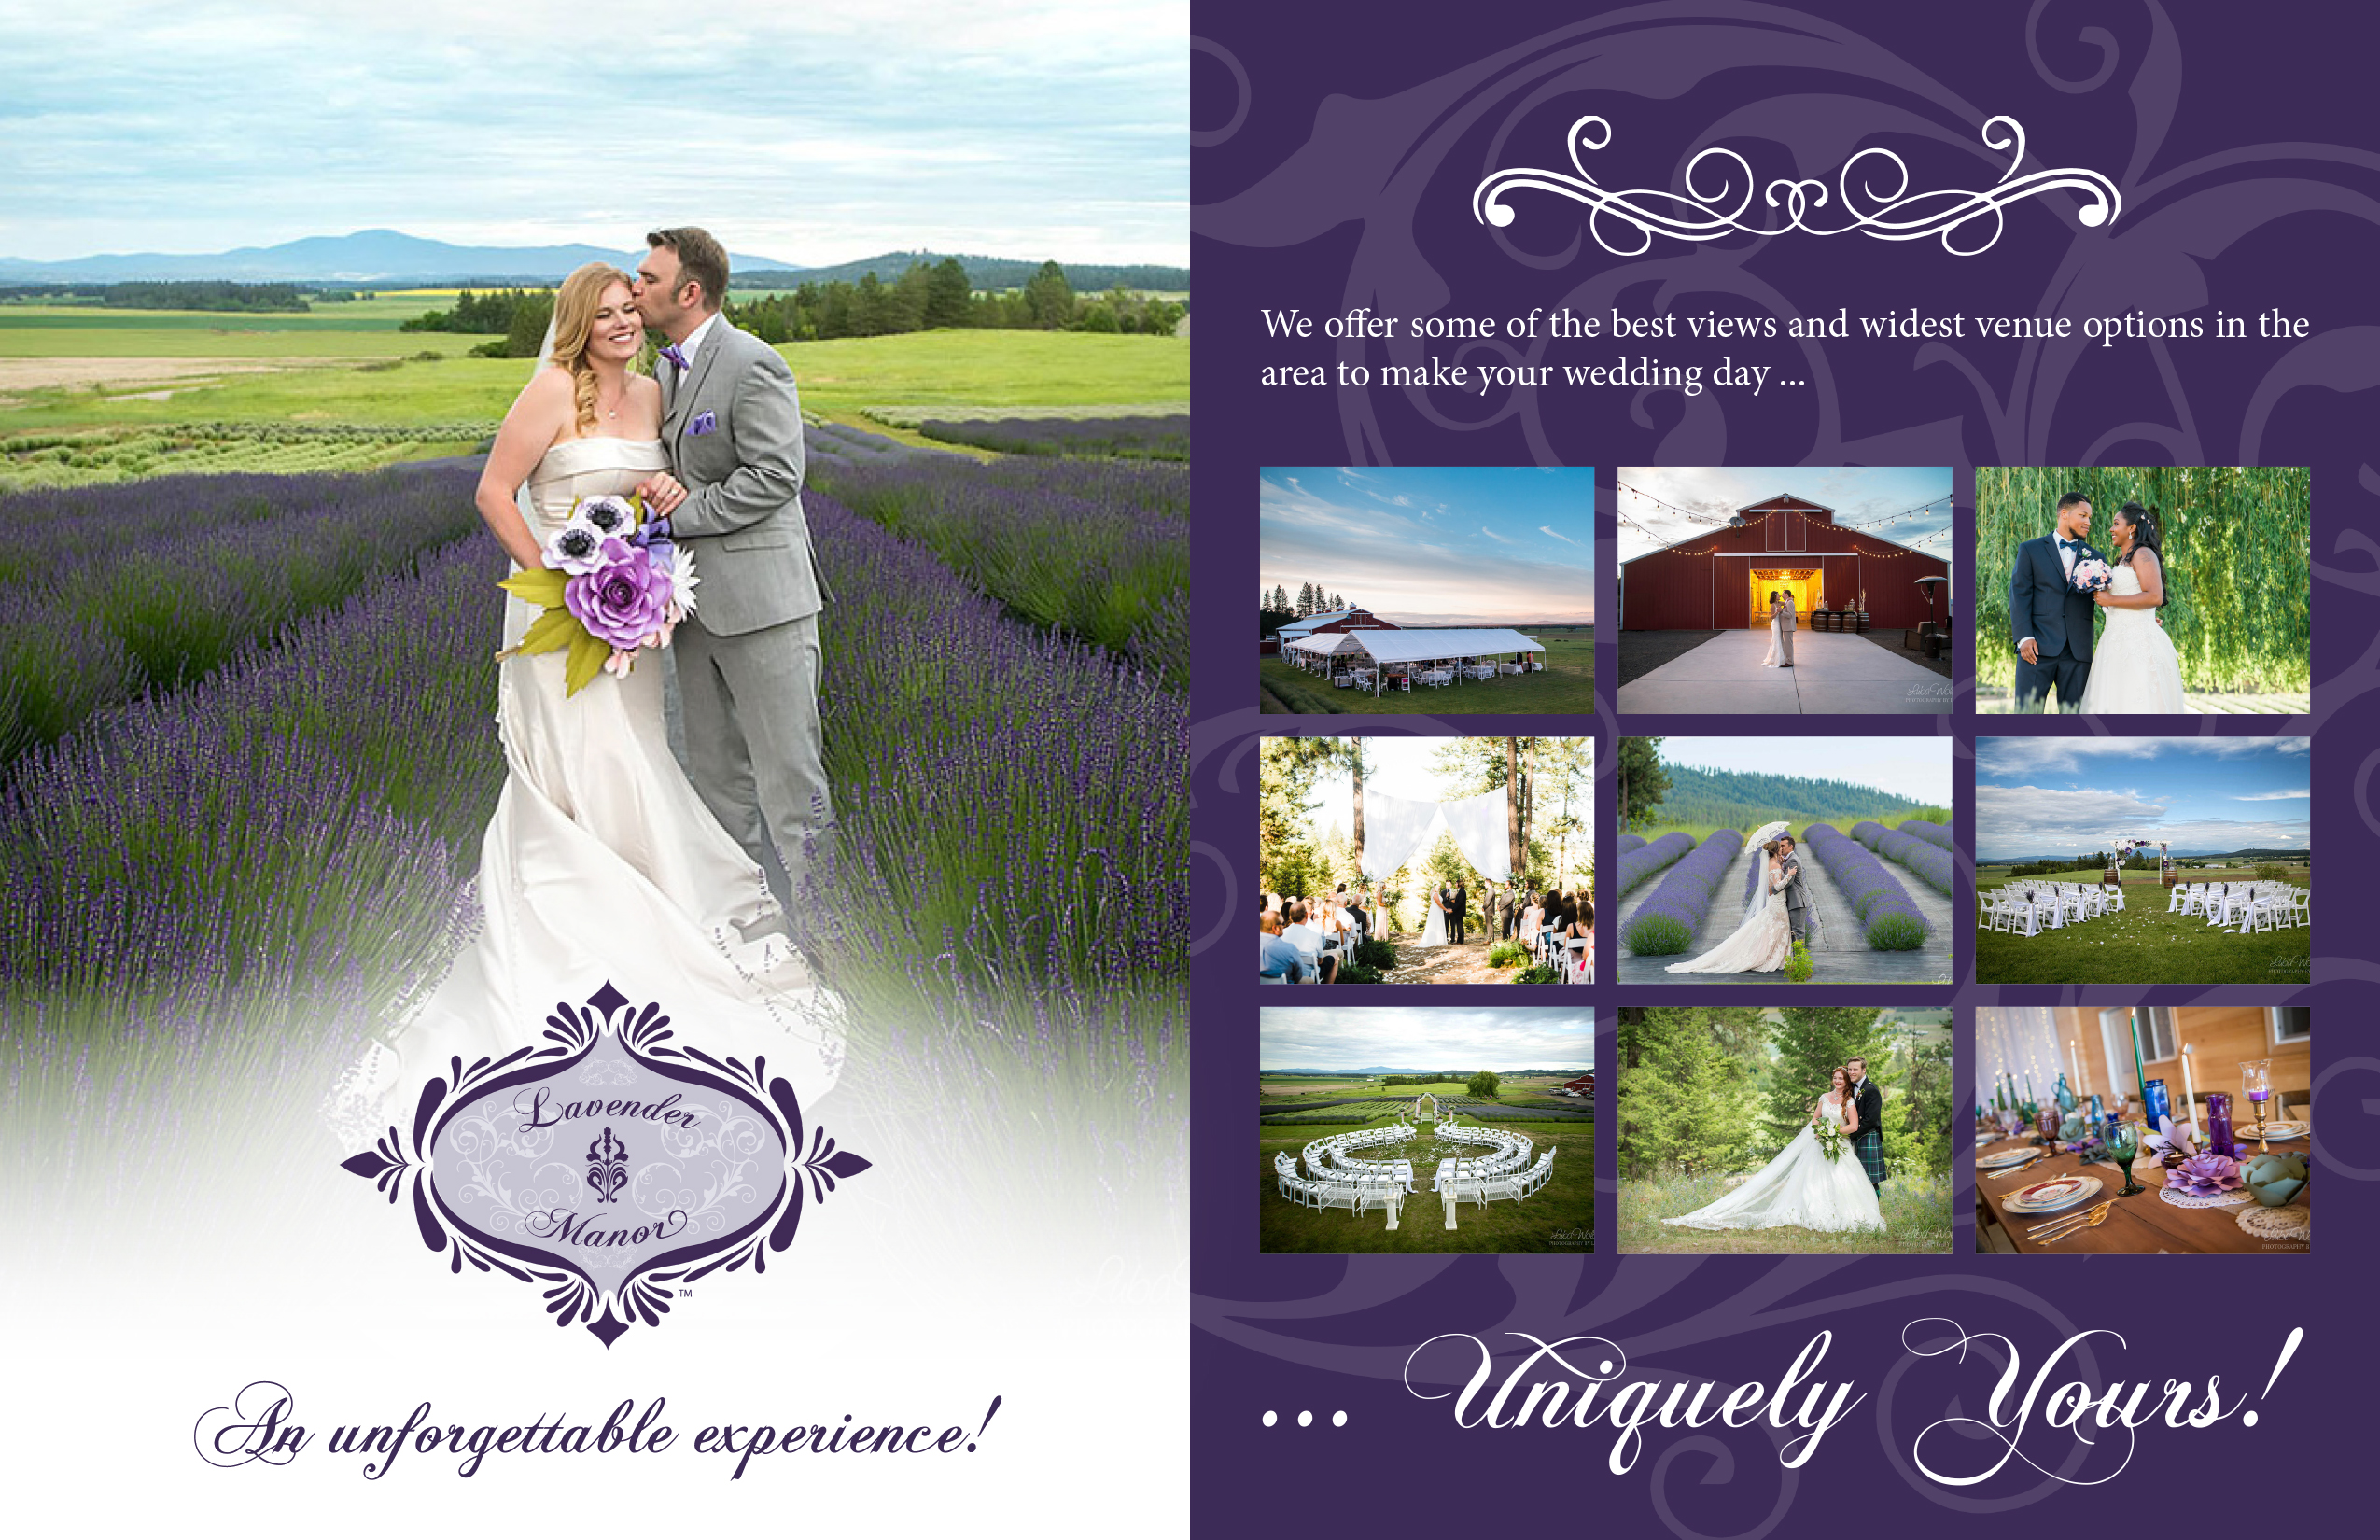 "<a href=""/vendors/wedding-lodging-facilities?id=""/>http://theweddingresourceguide.net/index.php?option=com_content&view=article&id=339</div></div></div></a>"